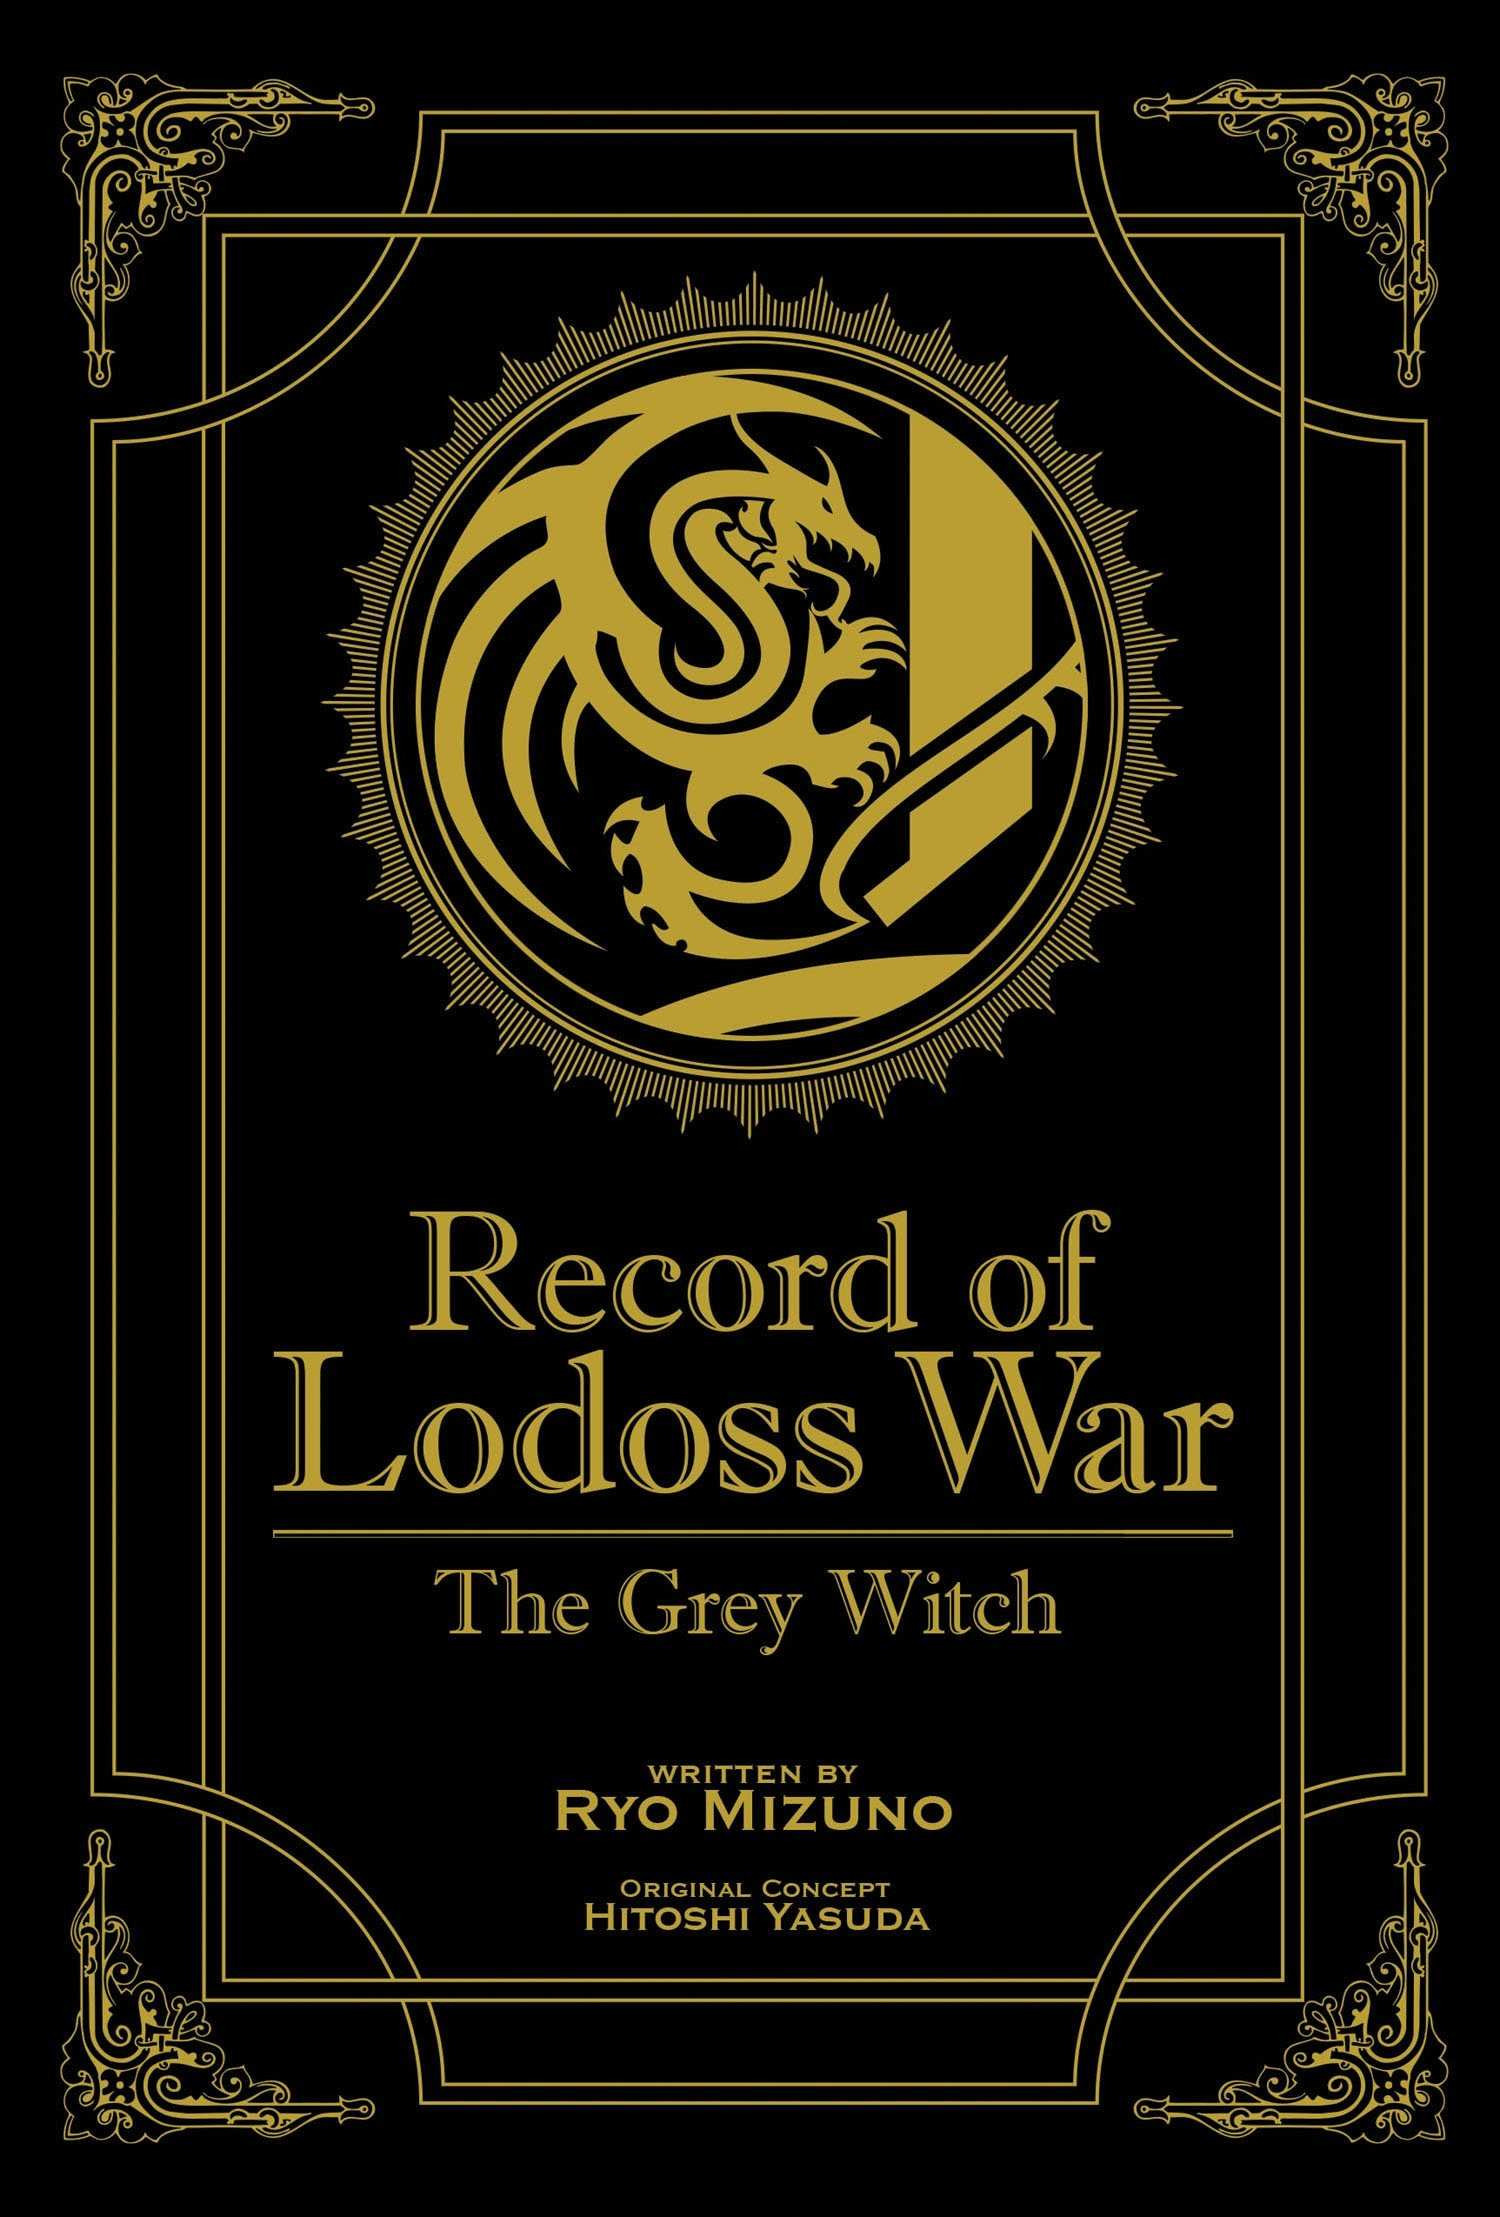 Record of Lodoss War: The Grey Witch (Gold Edition): Mizuno, Ryo, Izubuchi,  Yutaka: 9781626925700: Books - Amazon.ca